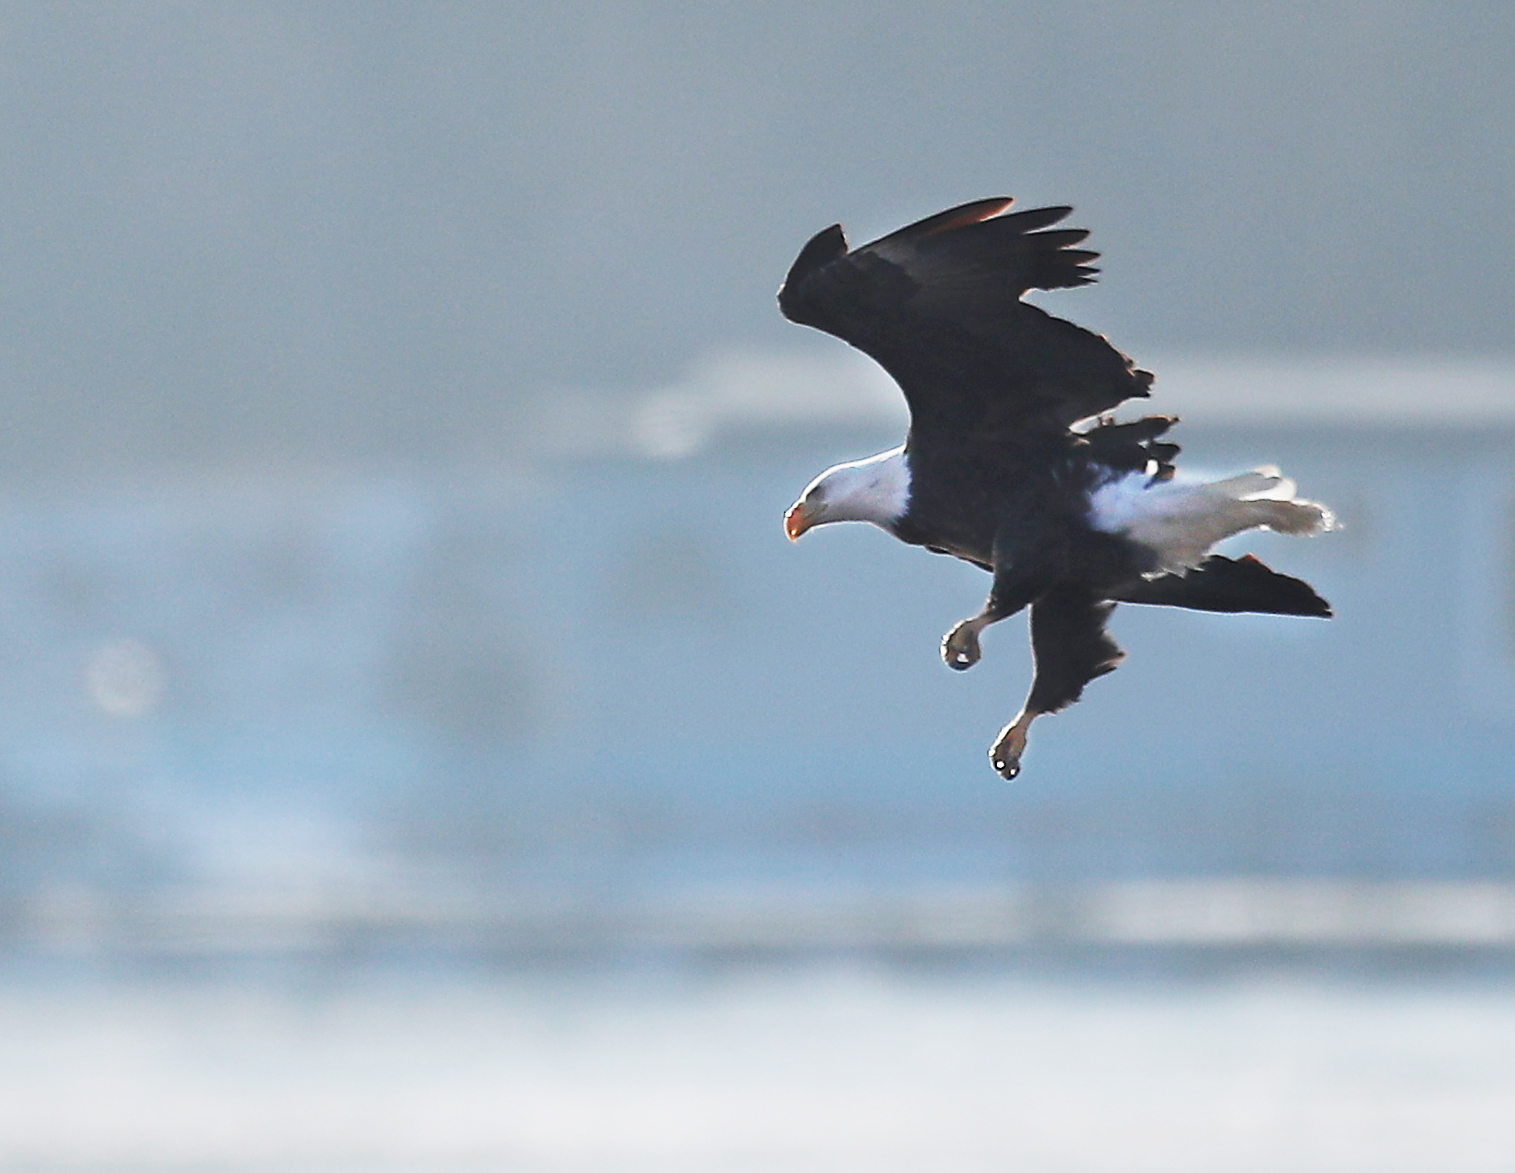 In winter, bald eagles frequent open water on the Mississippi River near Alma, Wis. Their numbers, once low, are increasing.